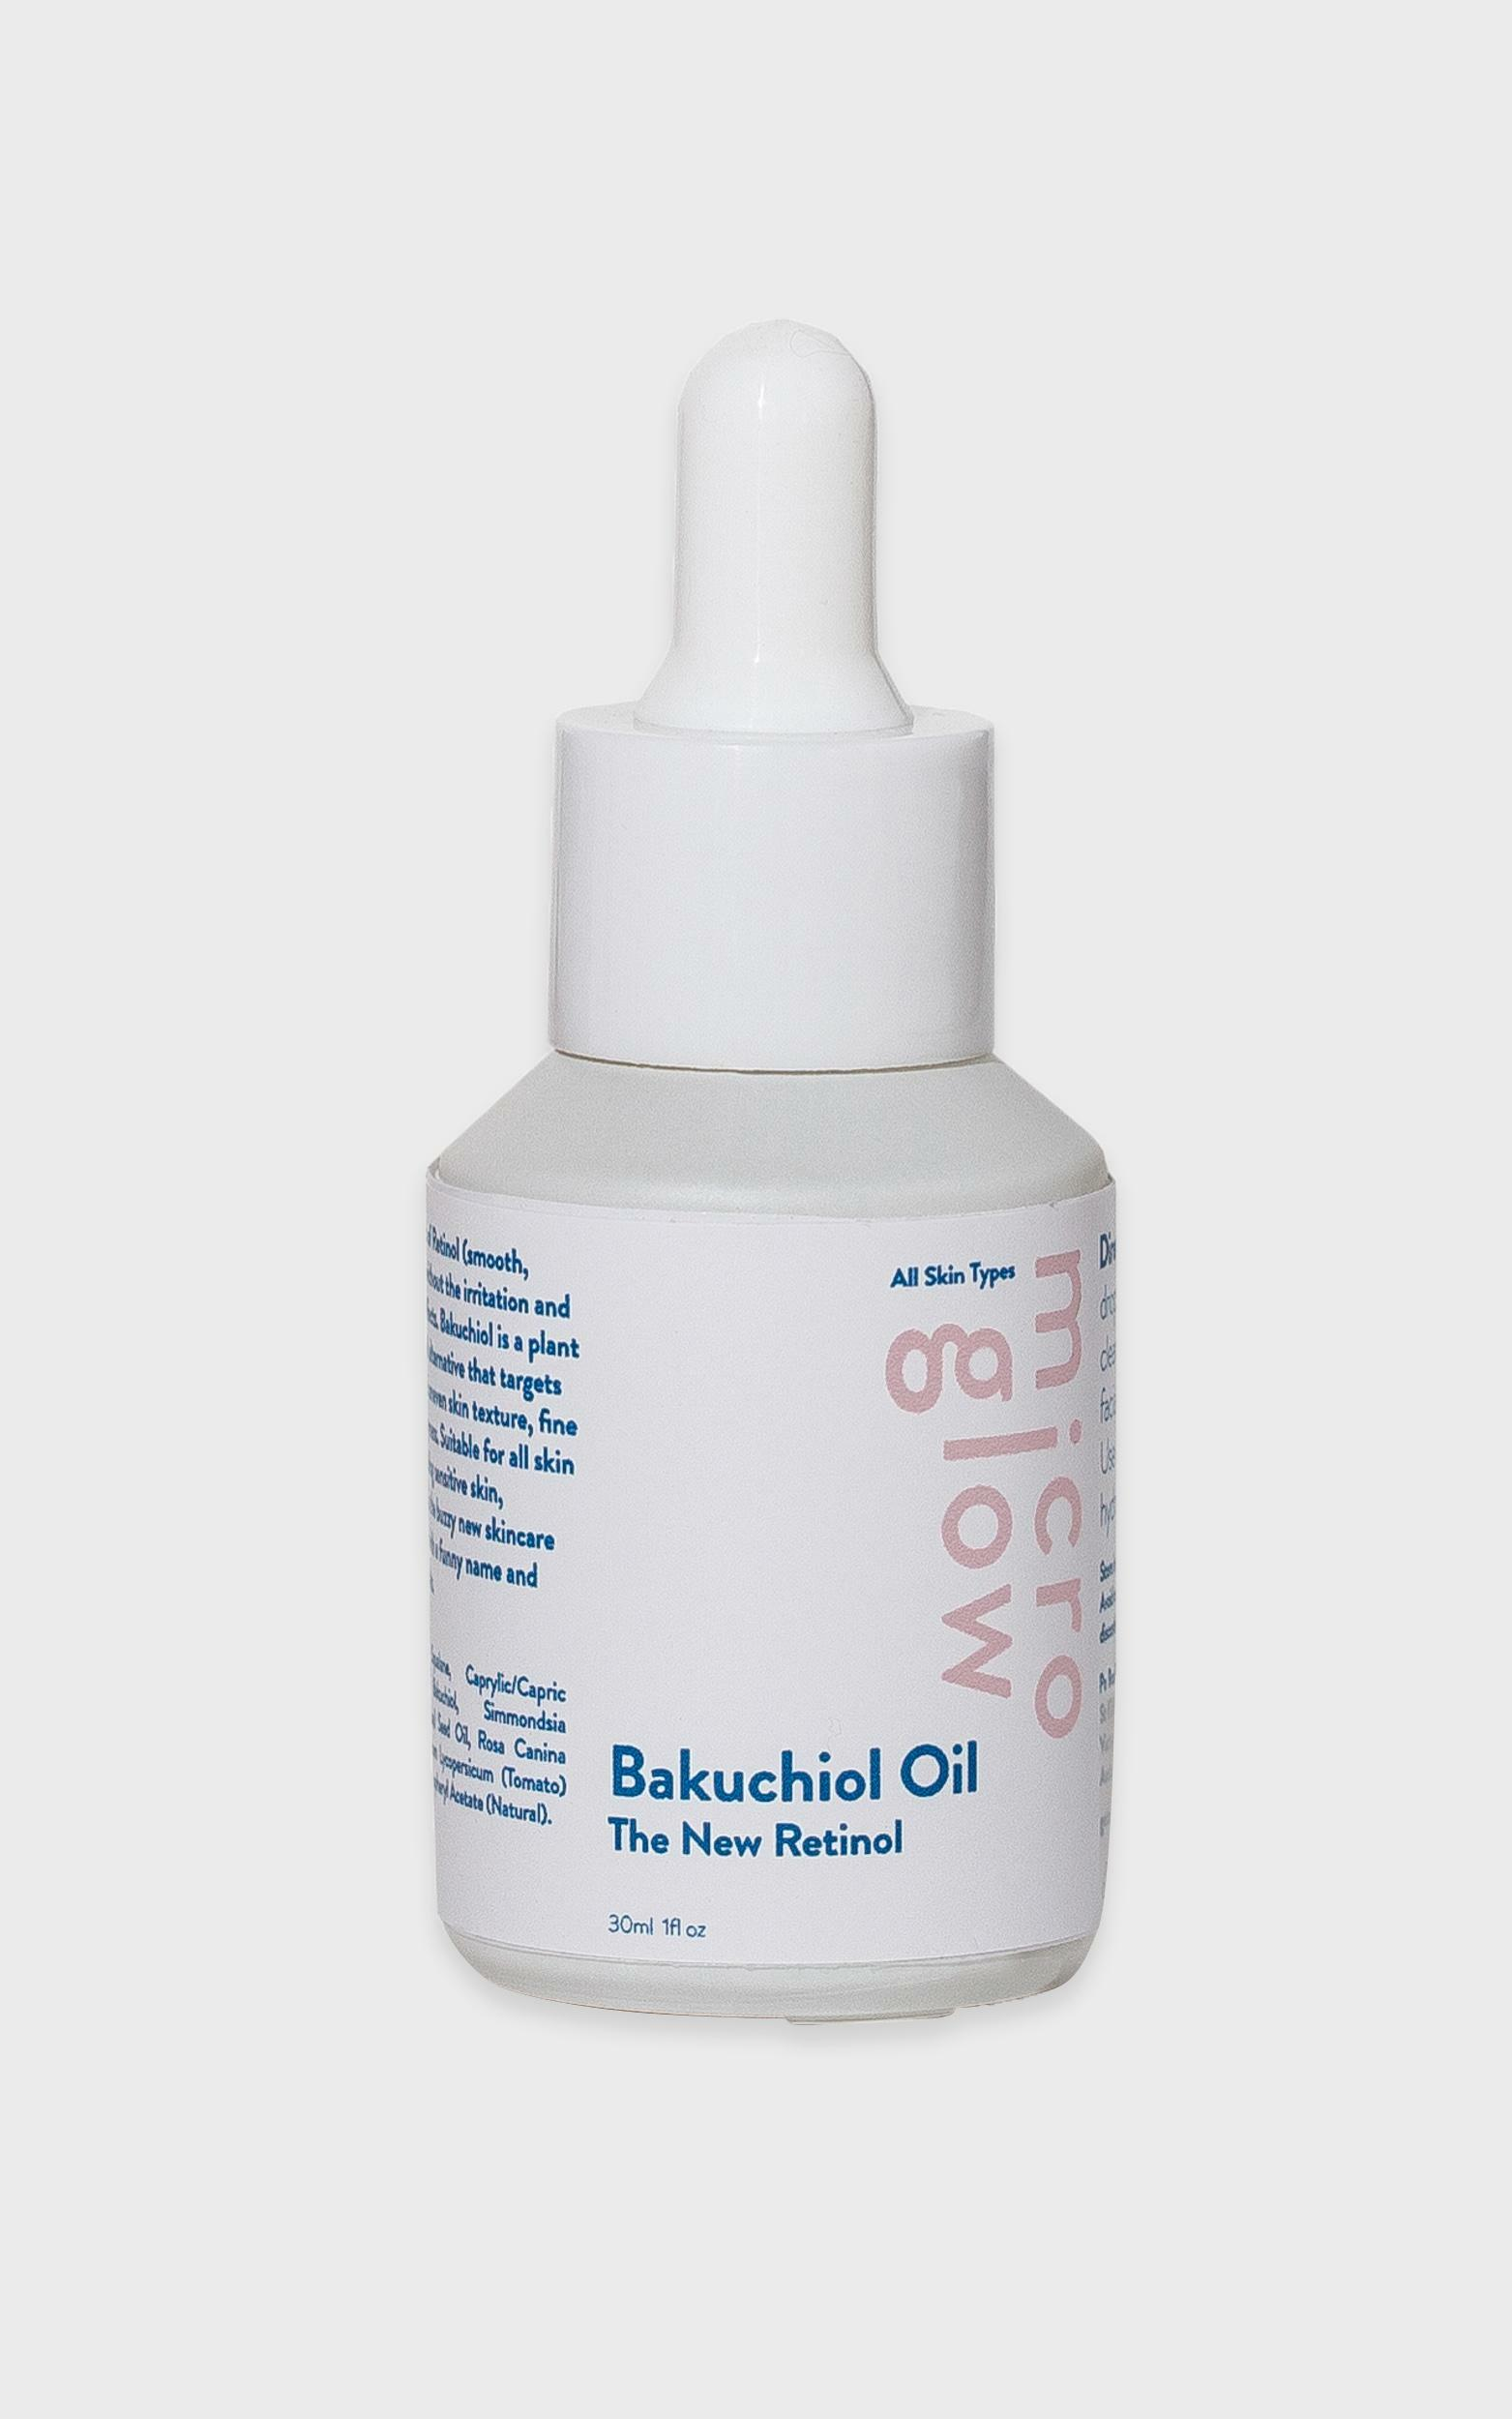 Micro Glow - Bakuchiol Oil in Clear, CLR1, hi-res image number null